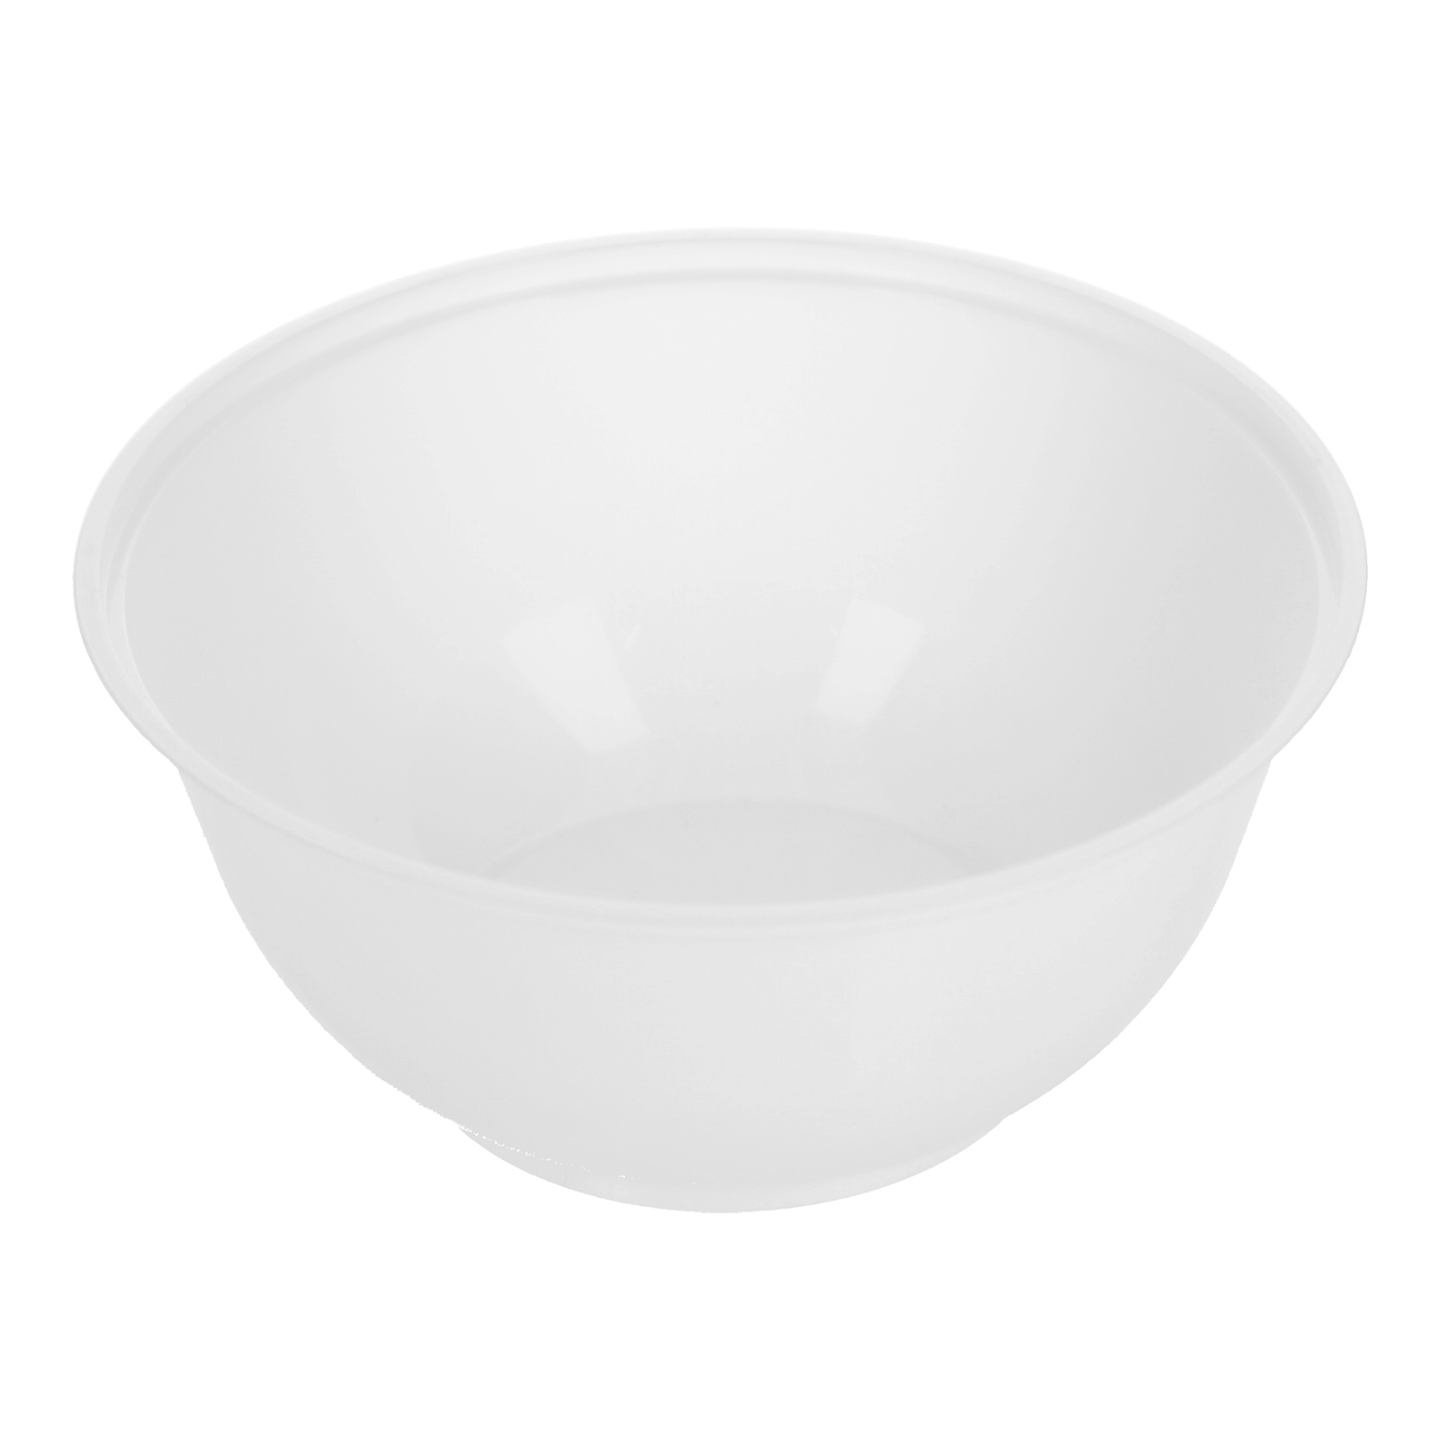 MS W5 White Plastic Bowl 塑料碗白